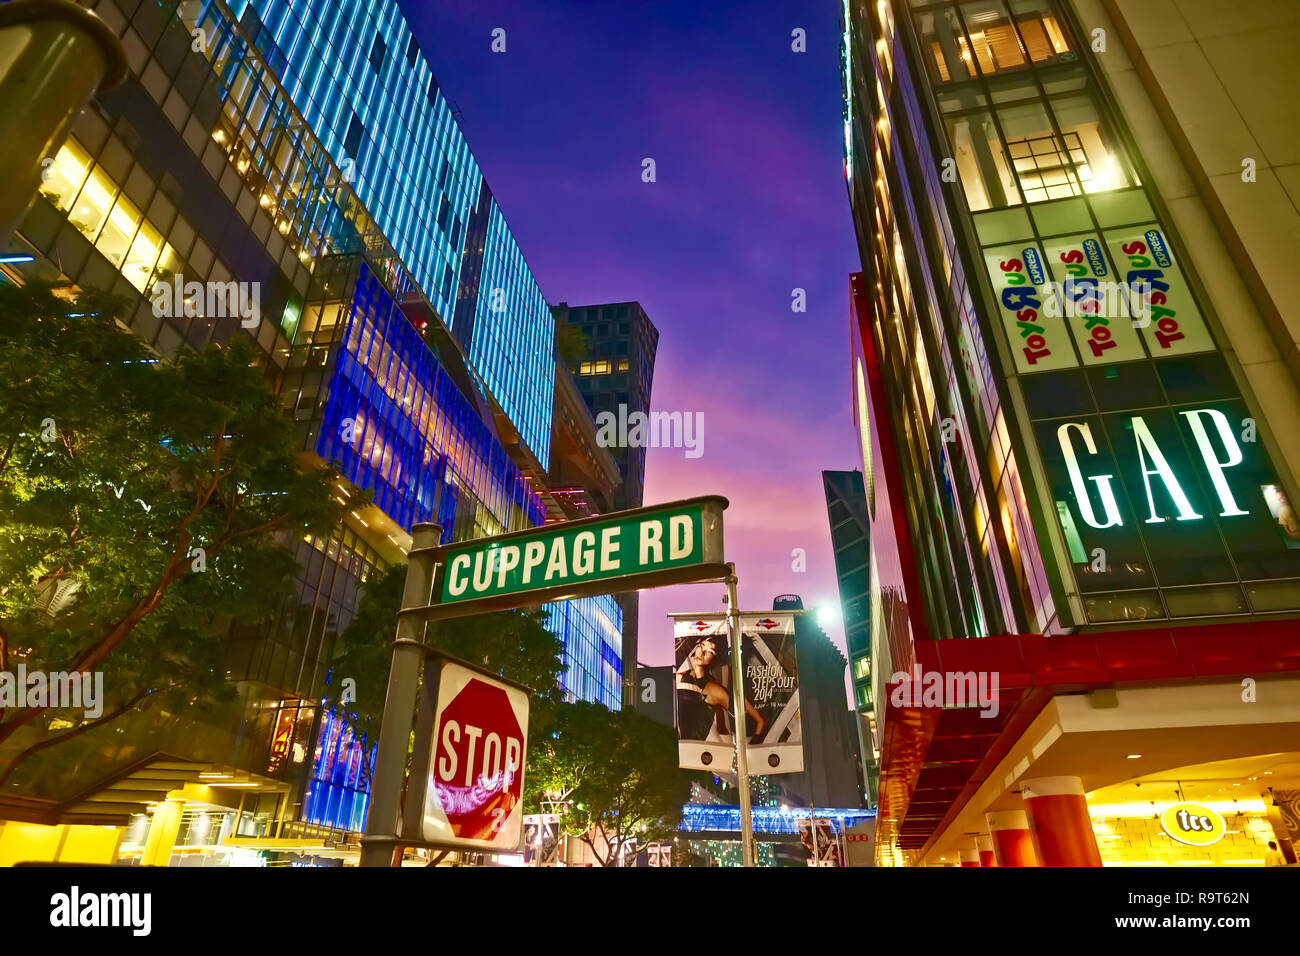 Shopping malls in luxury shopping street Orchard Road at corner Cuppage Road, shortly after sunset, Singapore [C] - Stock Image